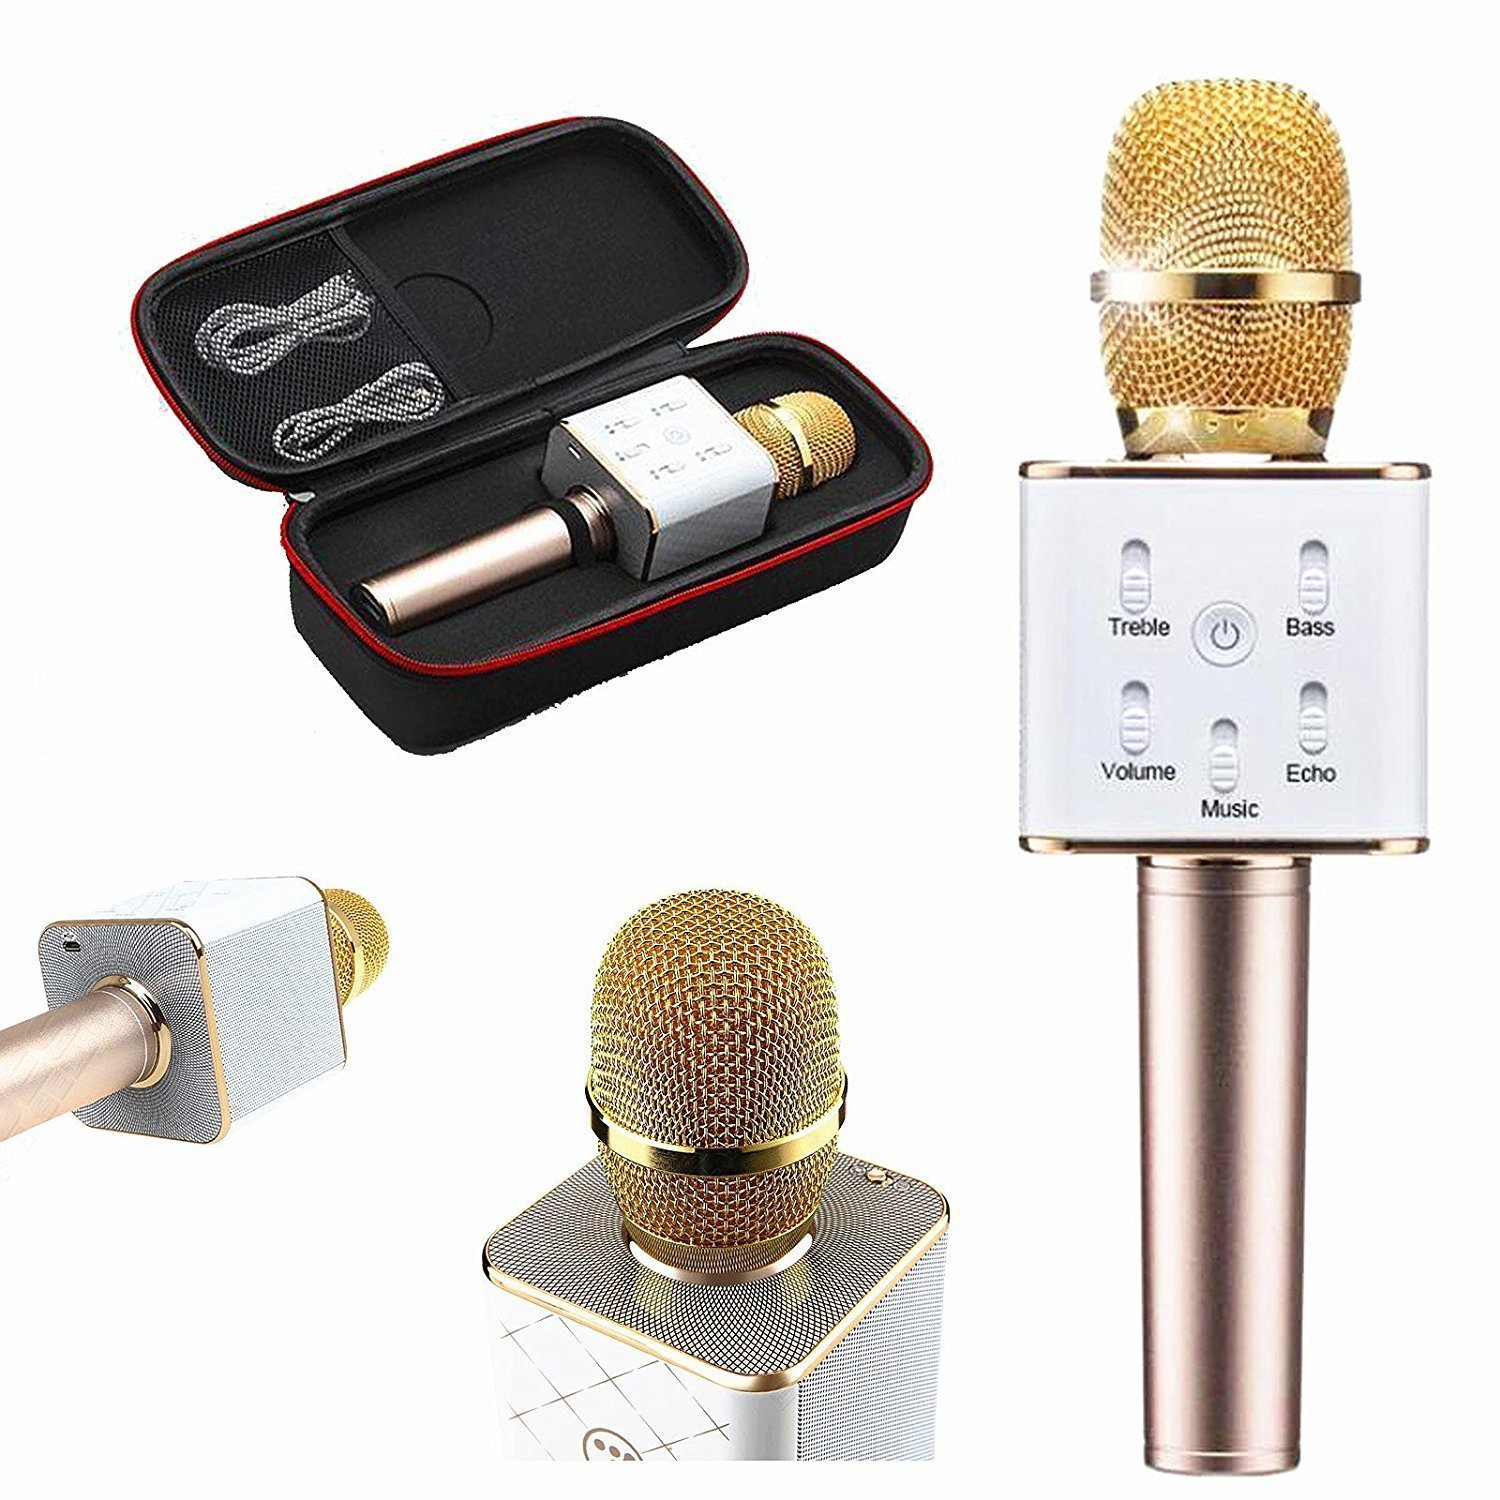 Wireless Q7 Karaoke Microphone Portable Handheld Mic Hifi Speaker Sing A Song Bluetooth Condenser And For Iphone Ipad Ipod Samsung Sony Htc Lumia